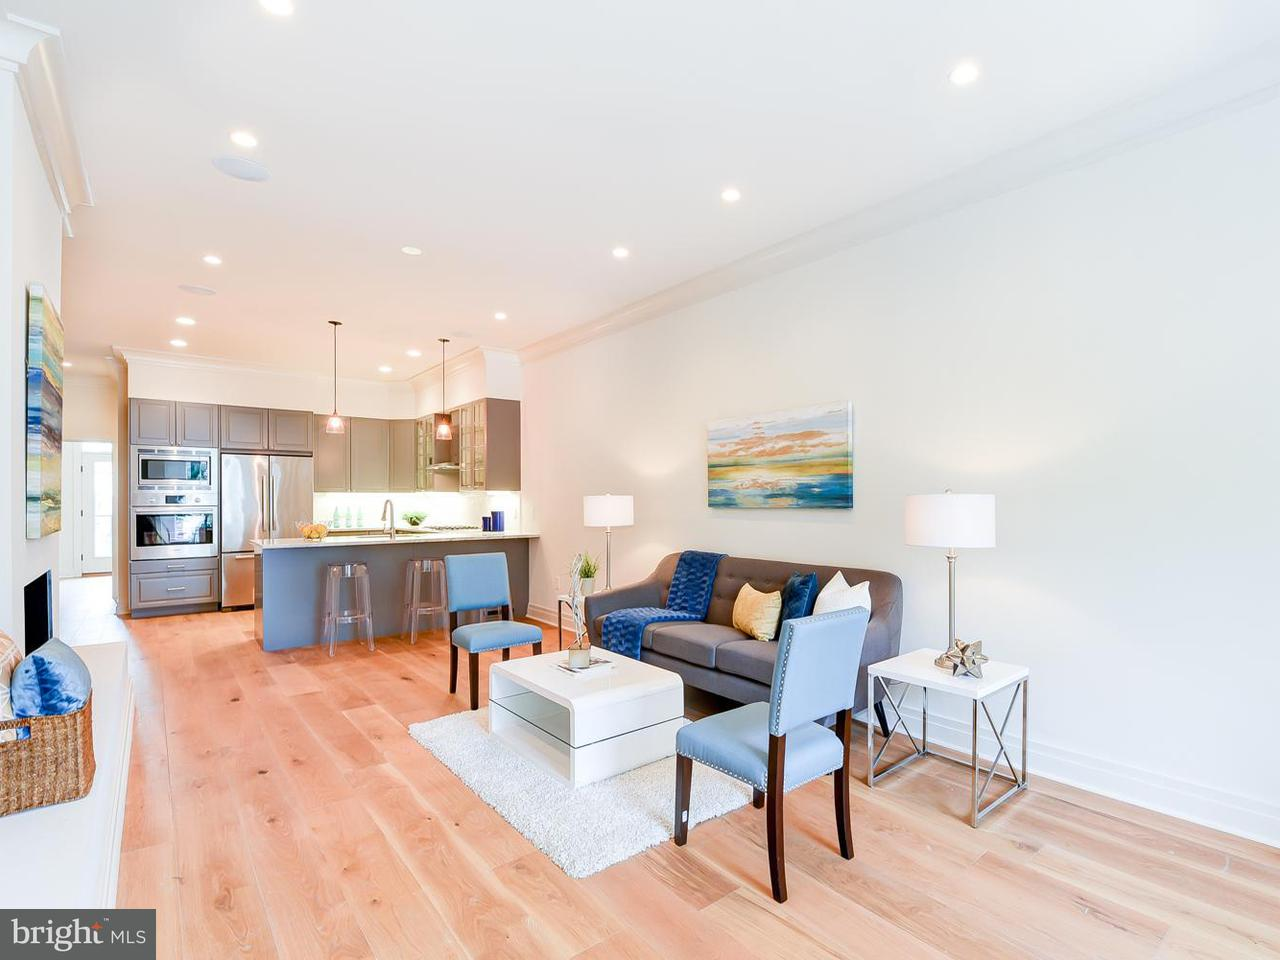 Townhouse for Sale at 64 U St Nw #1 64 U St Nw #1 Washington, District Of Columbia 20001 United States